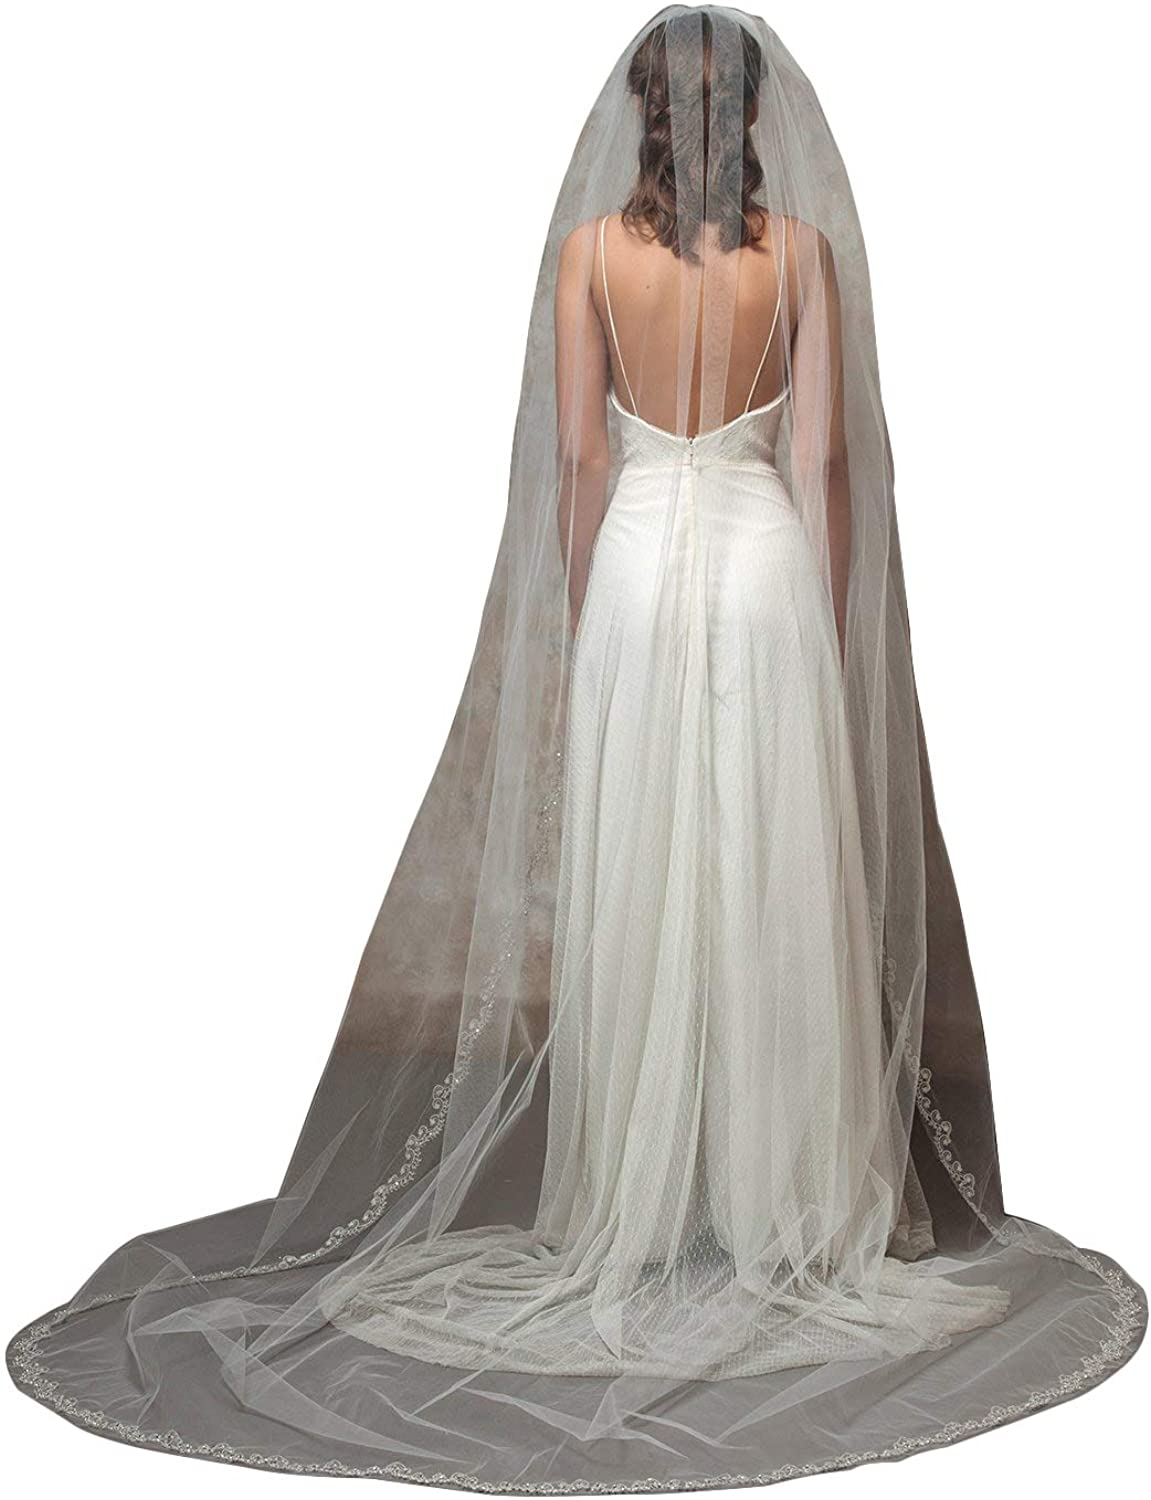 Fenghuavip 1 Tier Appliques Crystal Edge Wedding Veil for Brides Cathedral Length